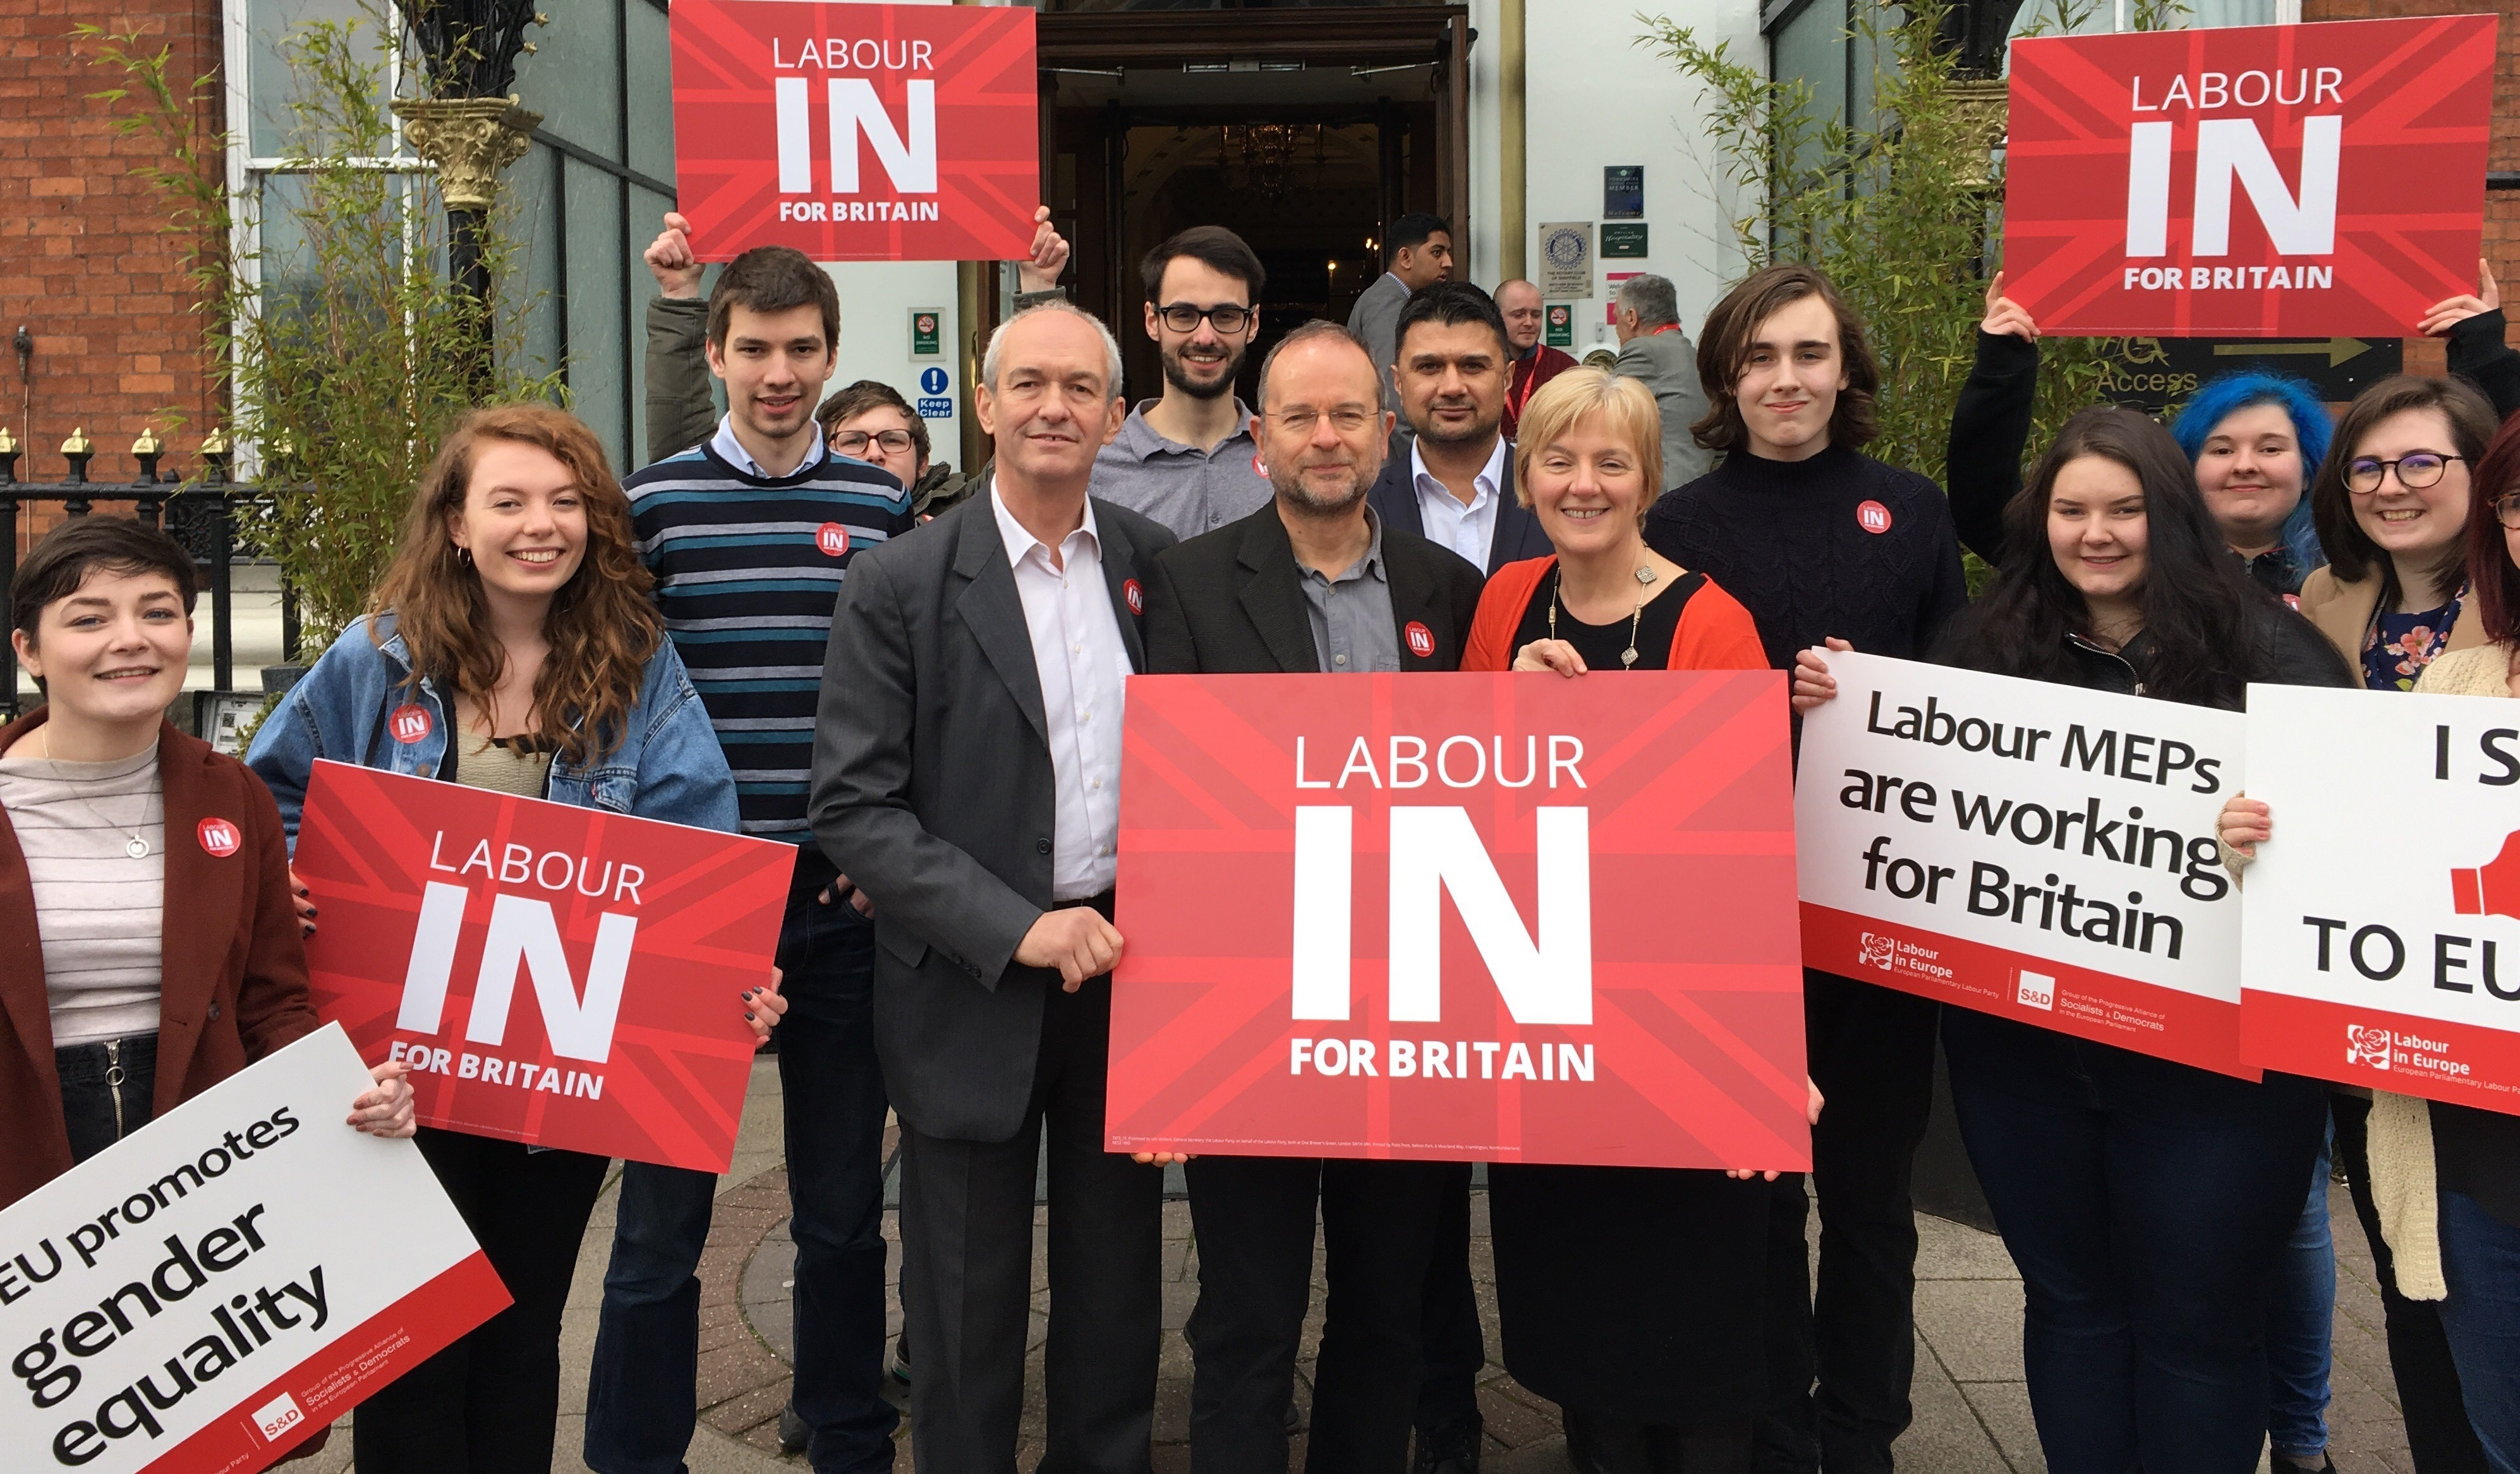 Labour_In_for_Britain_group_photo.jpg